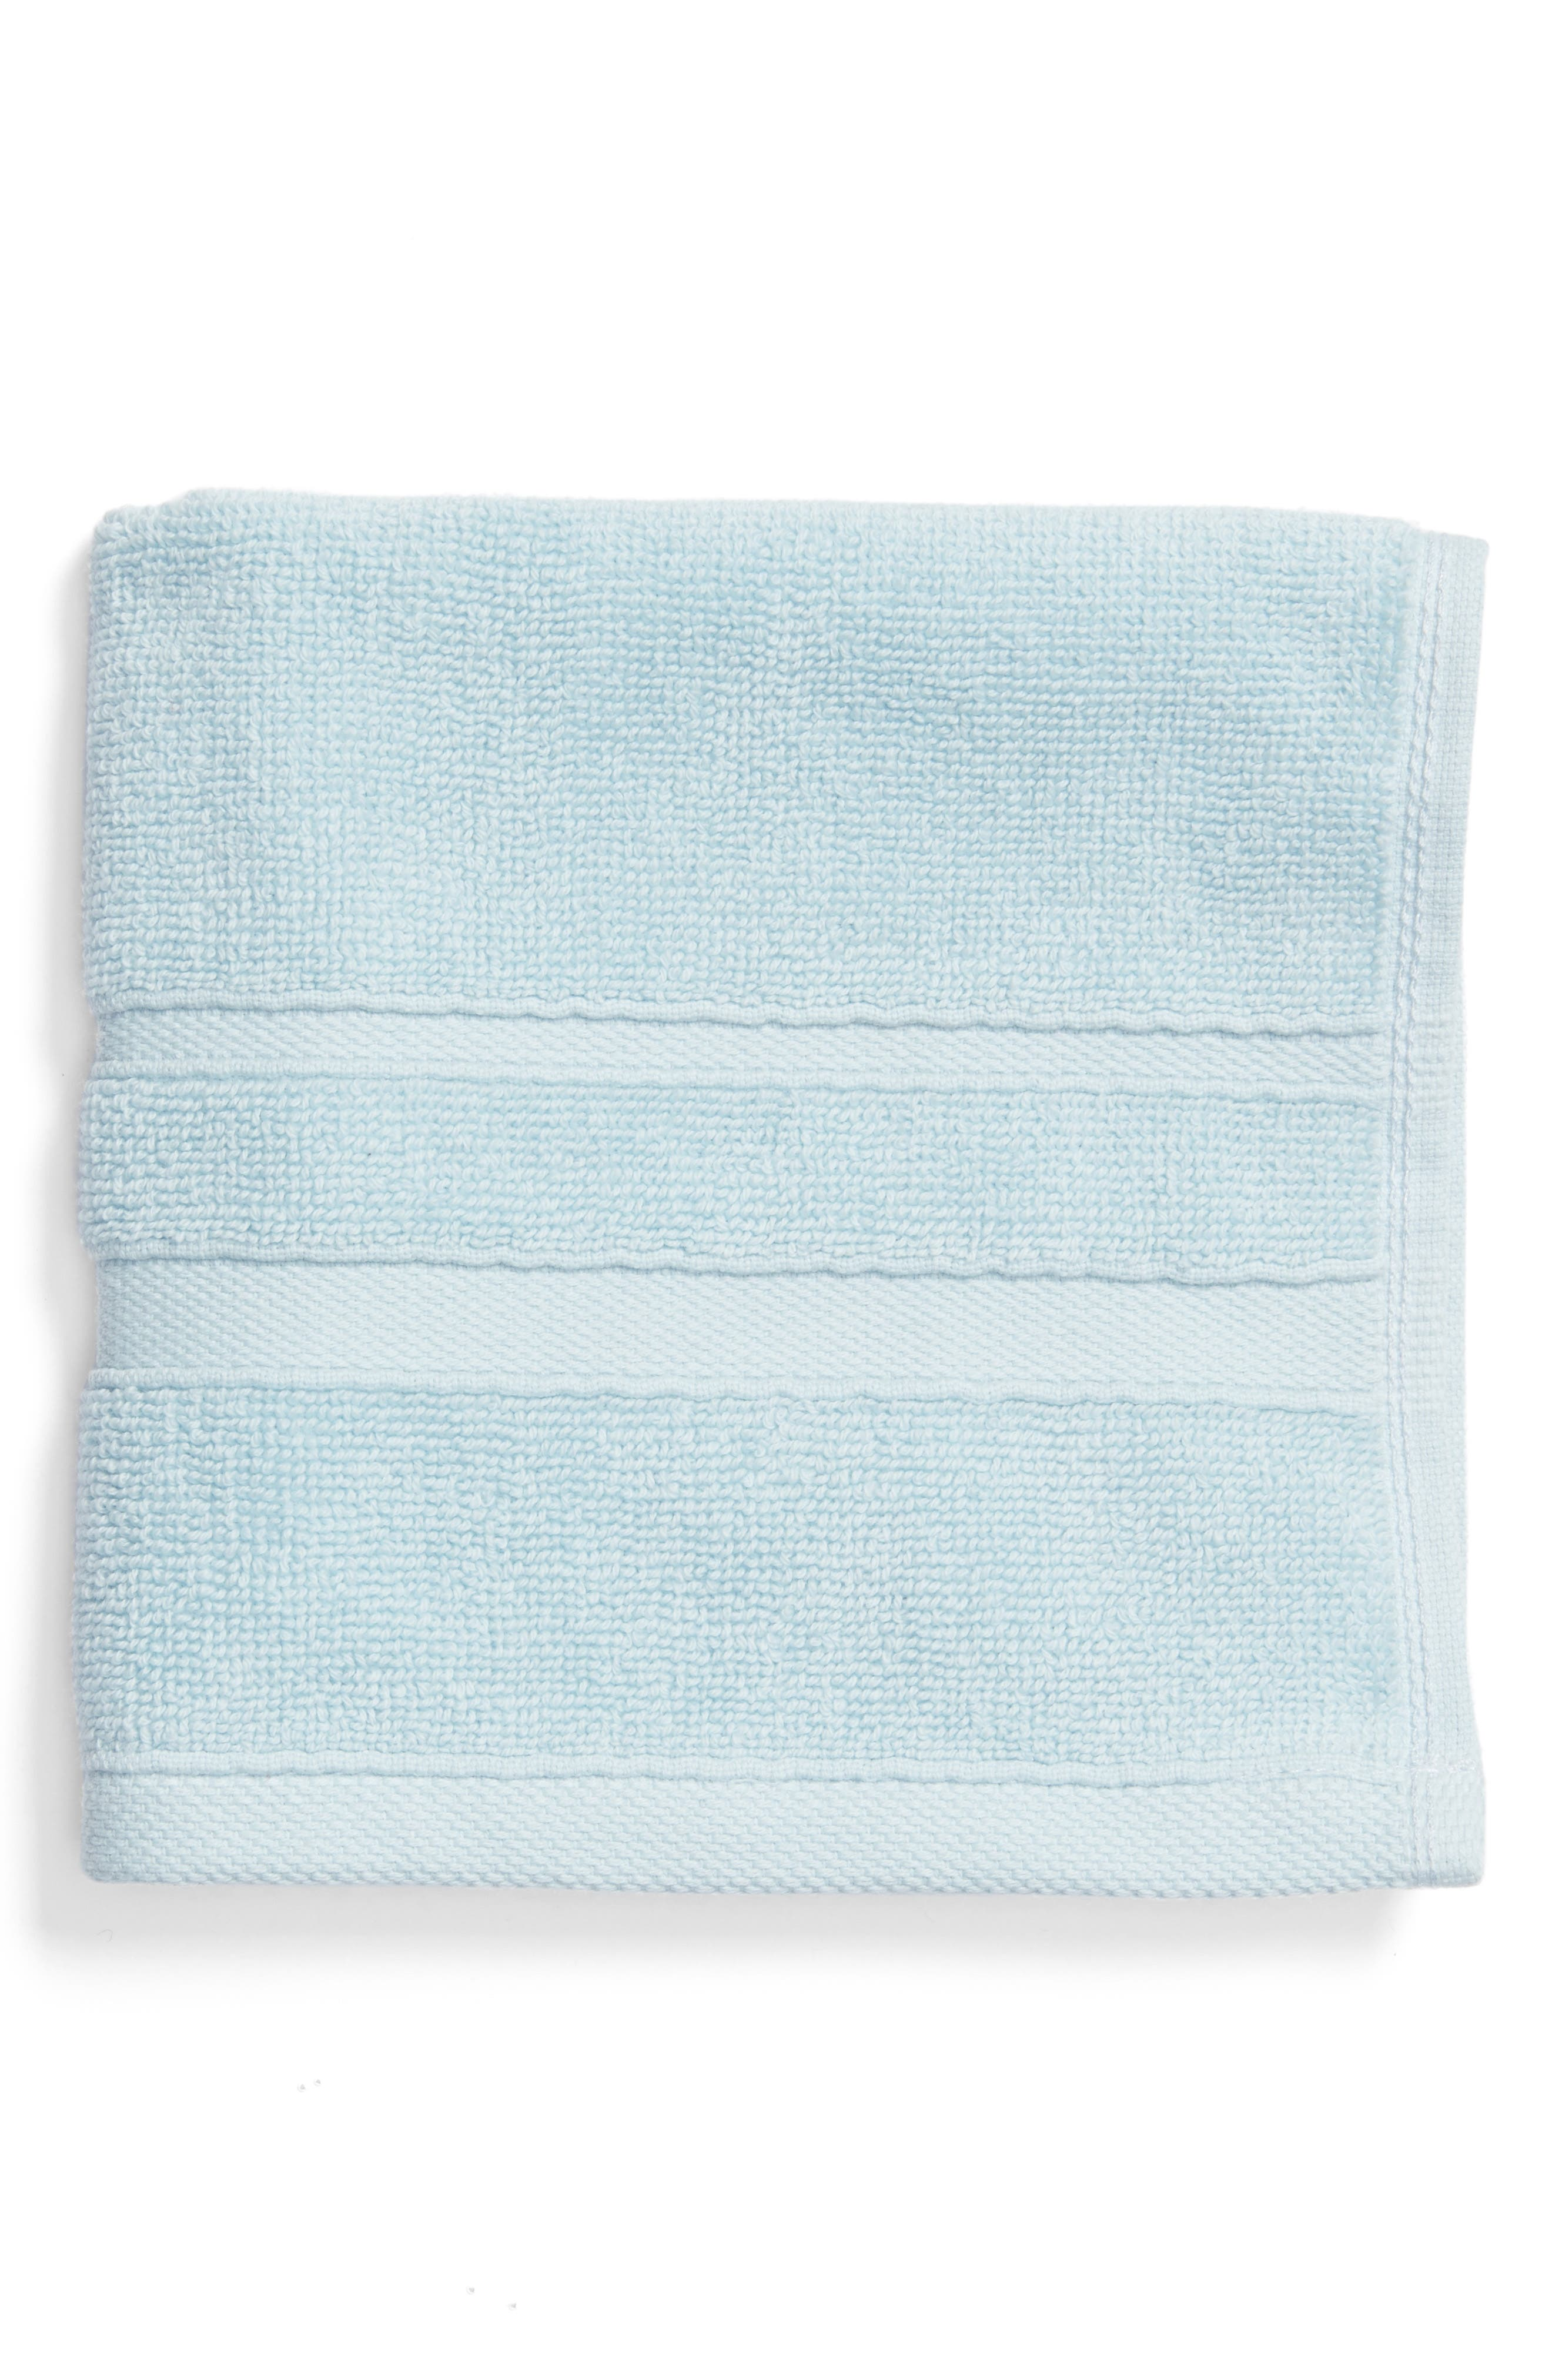 'Perennial' Combed Turkish Cotton Washcloth,                         Main,                         color, CHRYSTAL BLUE